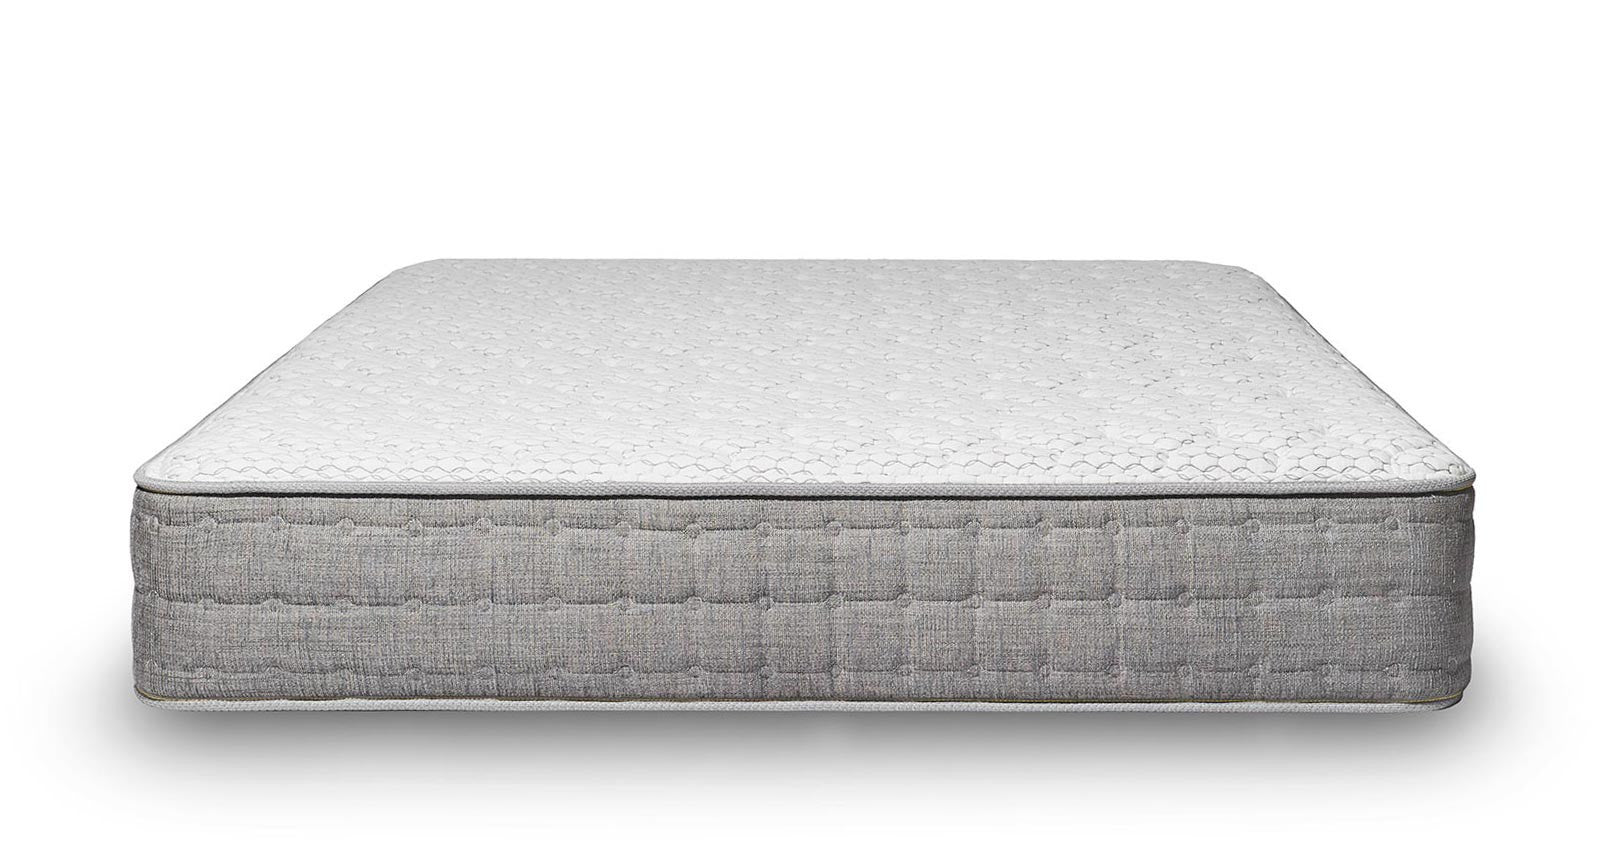 Sierra Mattress Brentwood Home